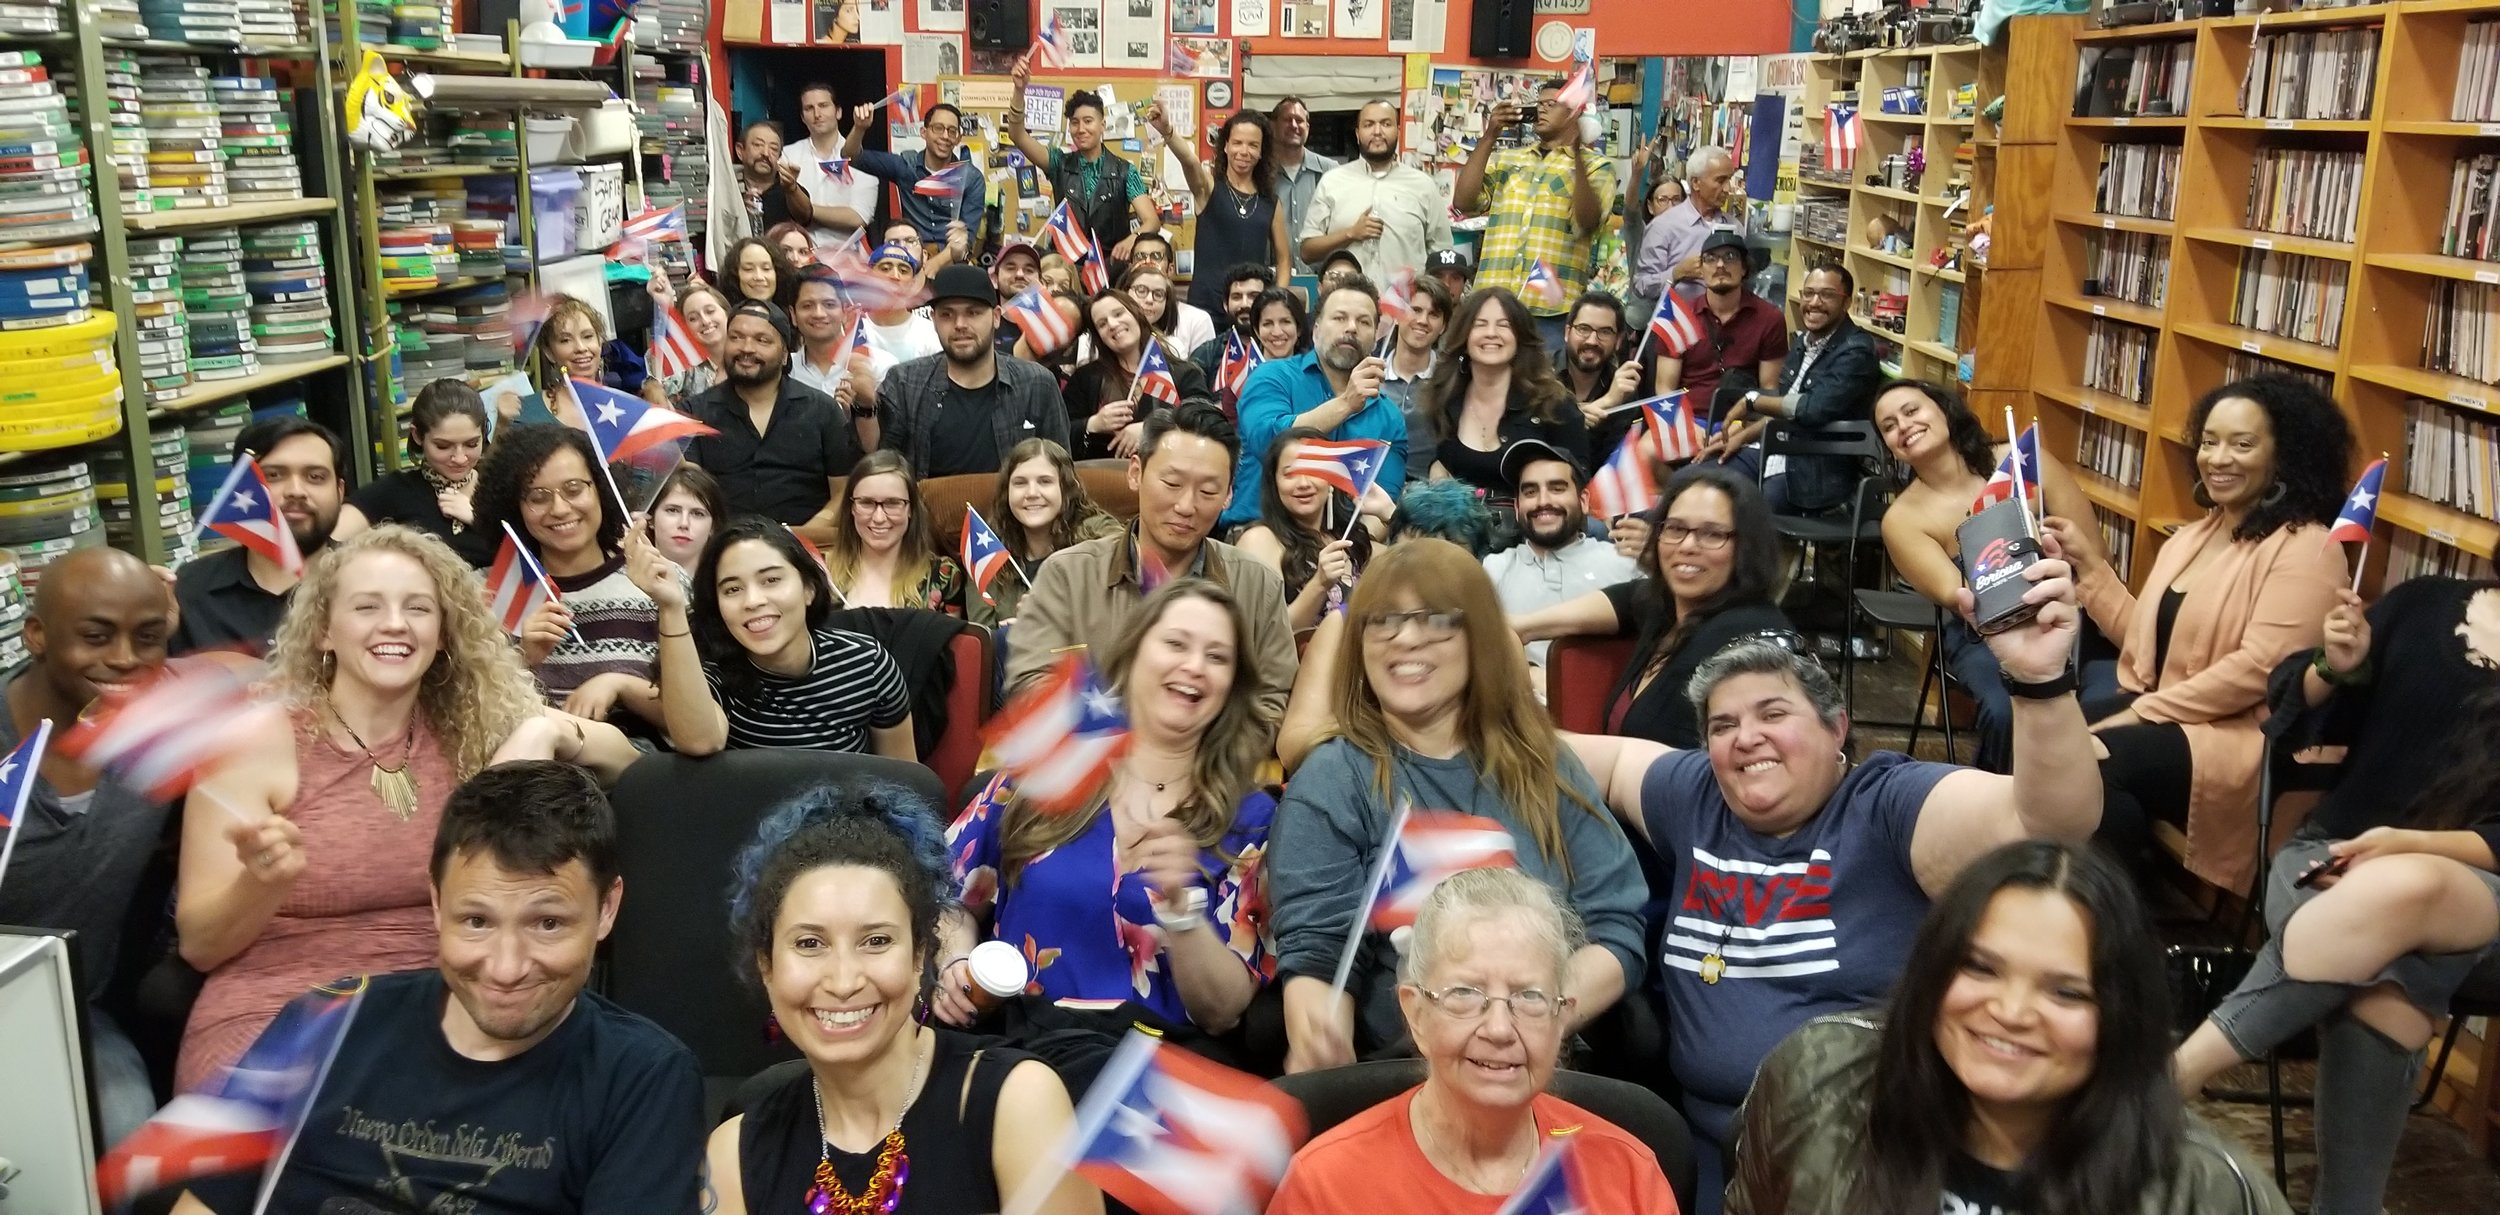 2nd Annual Puerto Rican Film Night - On Friday, April 12, 2019, Puerto Ricans in Action hosted the 2nd Annual